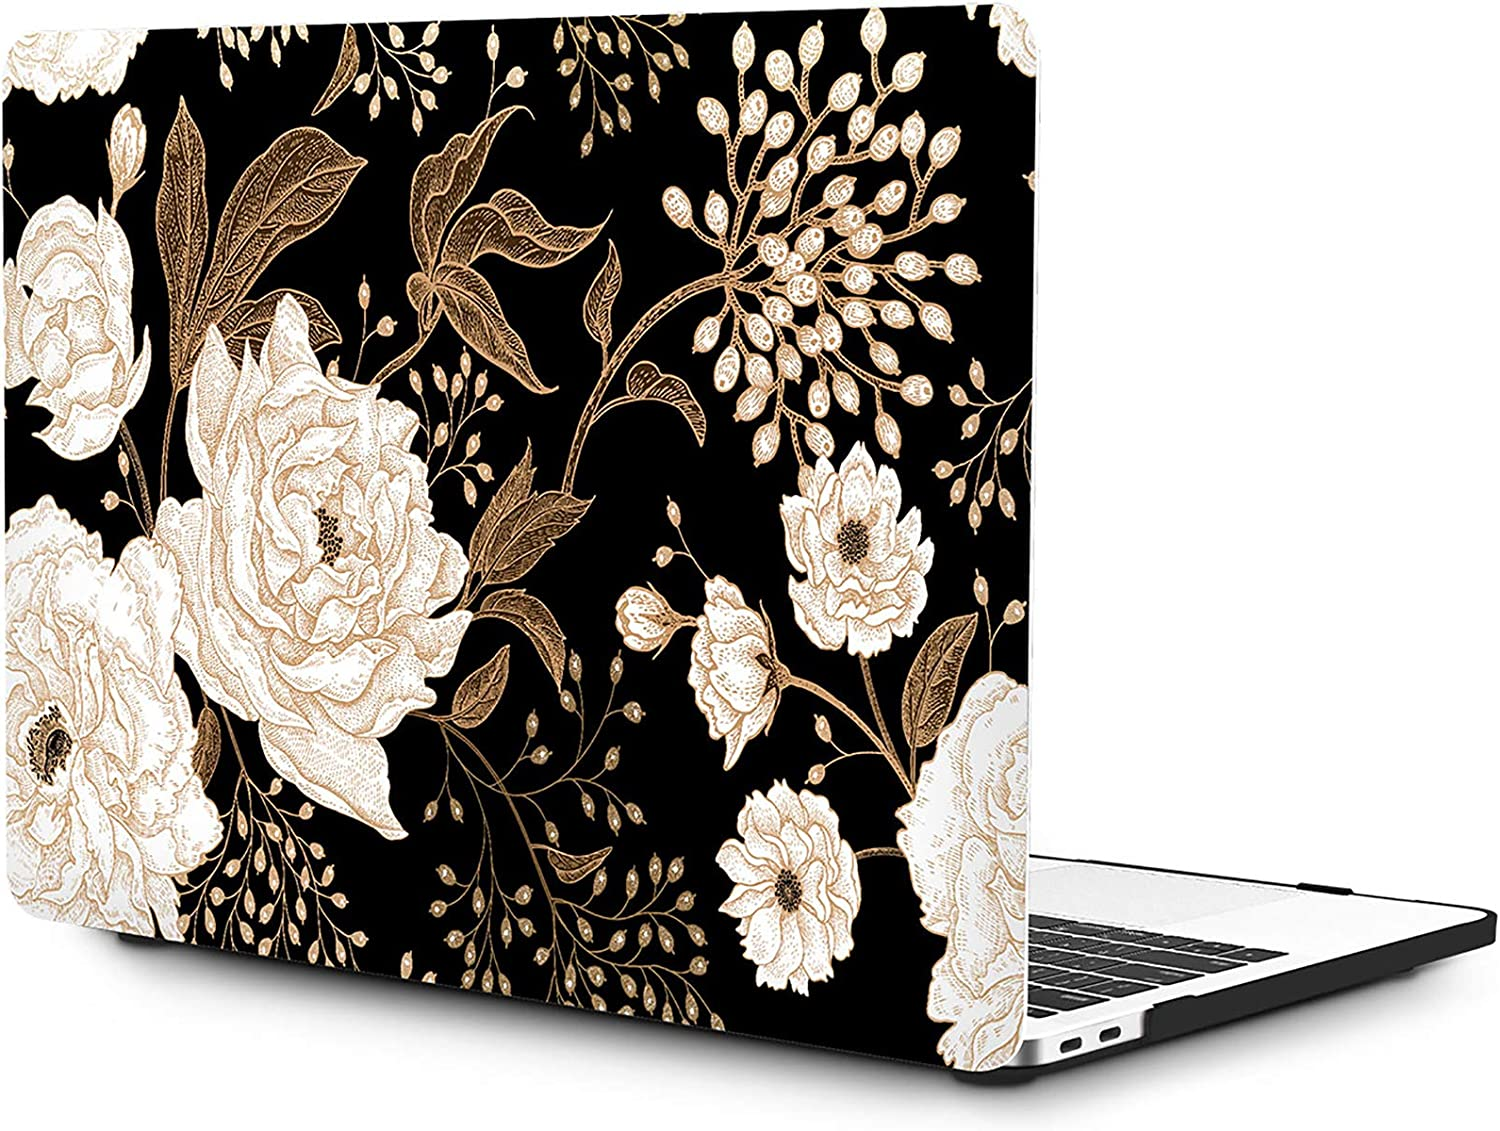 OneGET MacBook Pro 13 Inch Case with Touch Bar Laptop Case MacBook Pro 13 Inch 2016-2019 Release A2159 A1989 A1706 A1708 MacBook Pro Cover for MacBook Pro 13 Inches Hard Shell Flowers (F38)